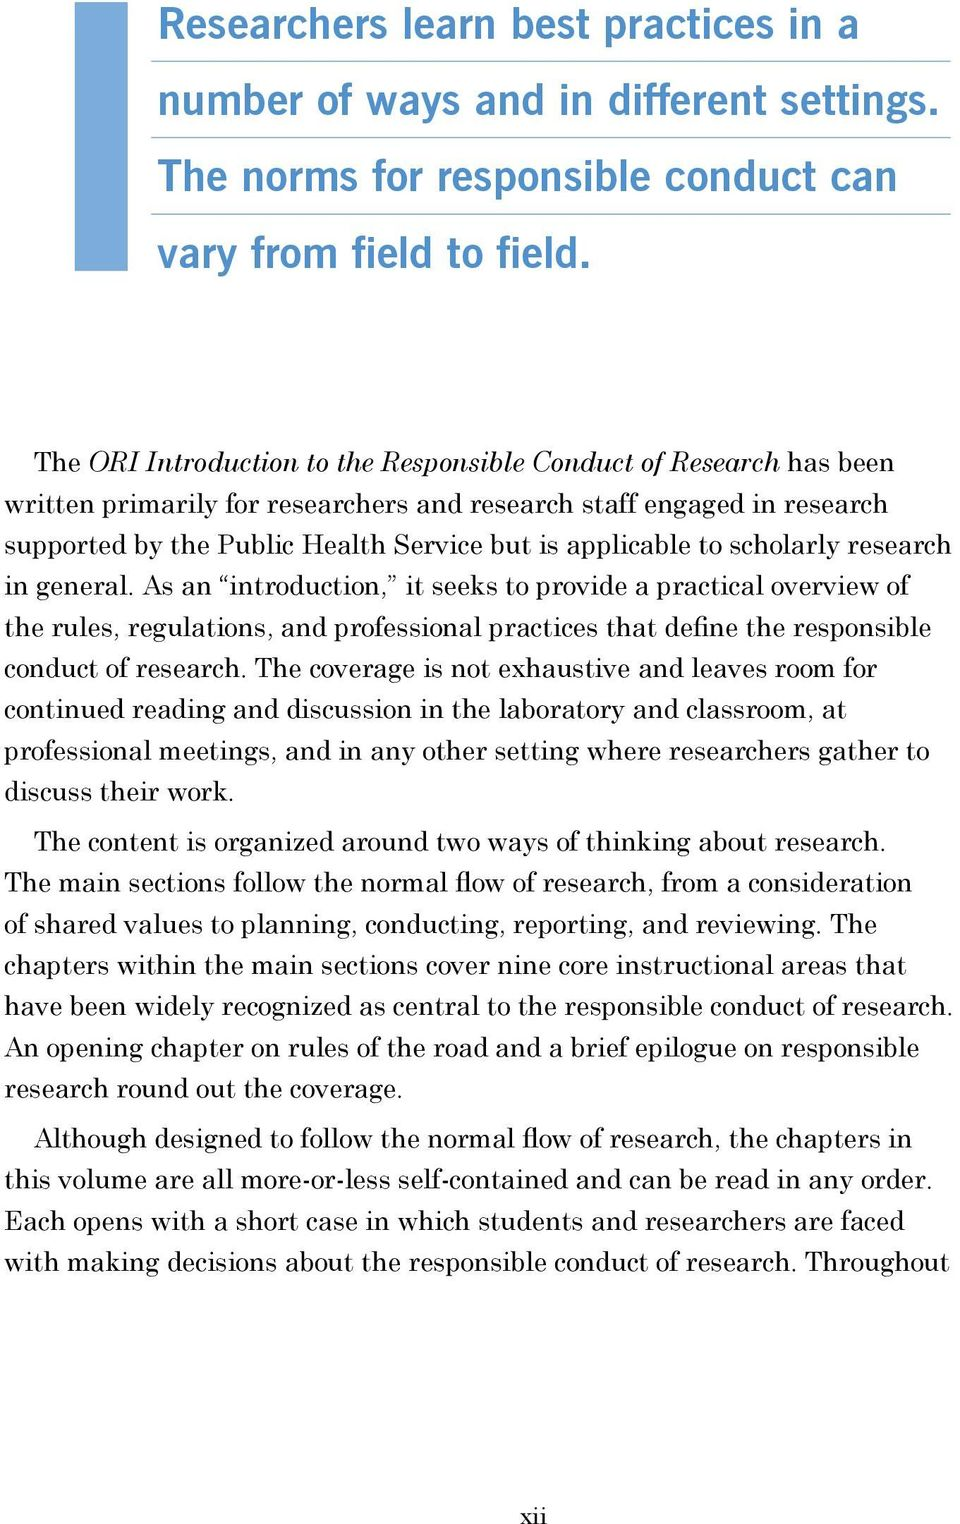 scholarly research in general. As an introduction, it seeks to rovide a ractical overview of the rules, regulations, and rofessional ractices that define the resonsible conduct of research.